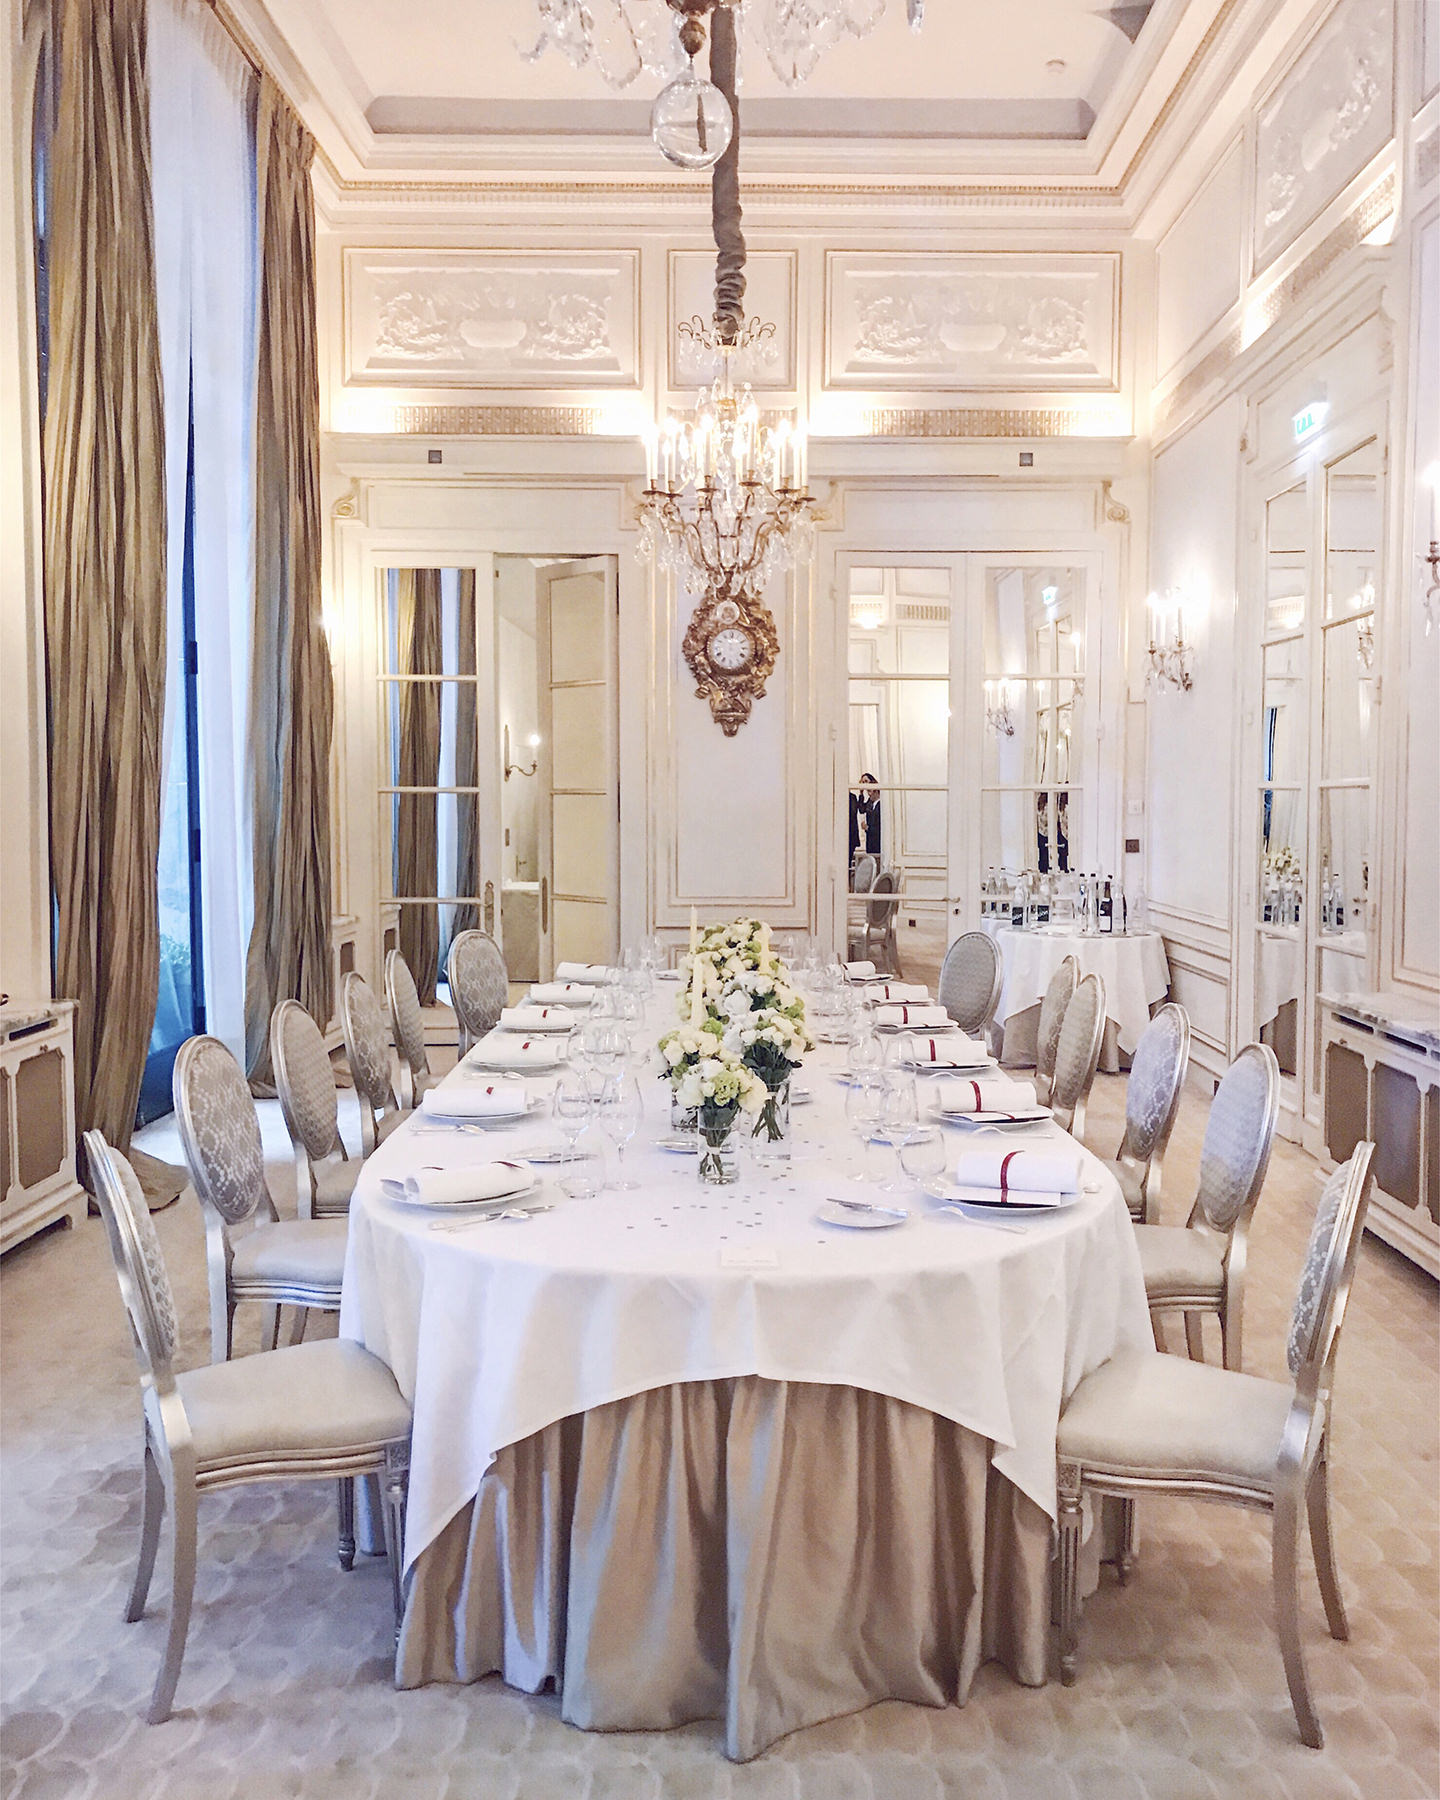 Blog-Mode-And-The-City-Lifestyle-Cinq-Petites-Choses-216-diner-dior-plaza-paris